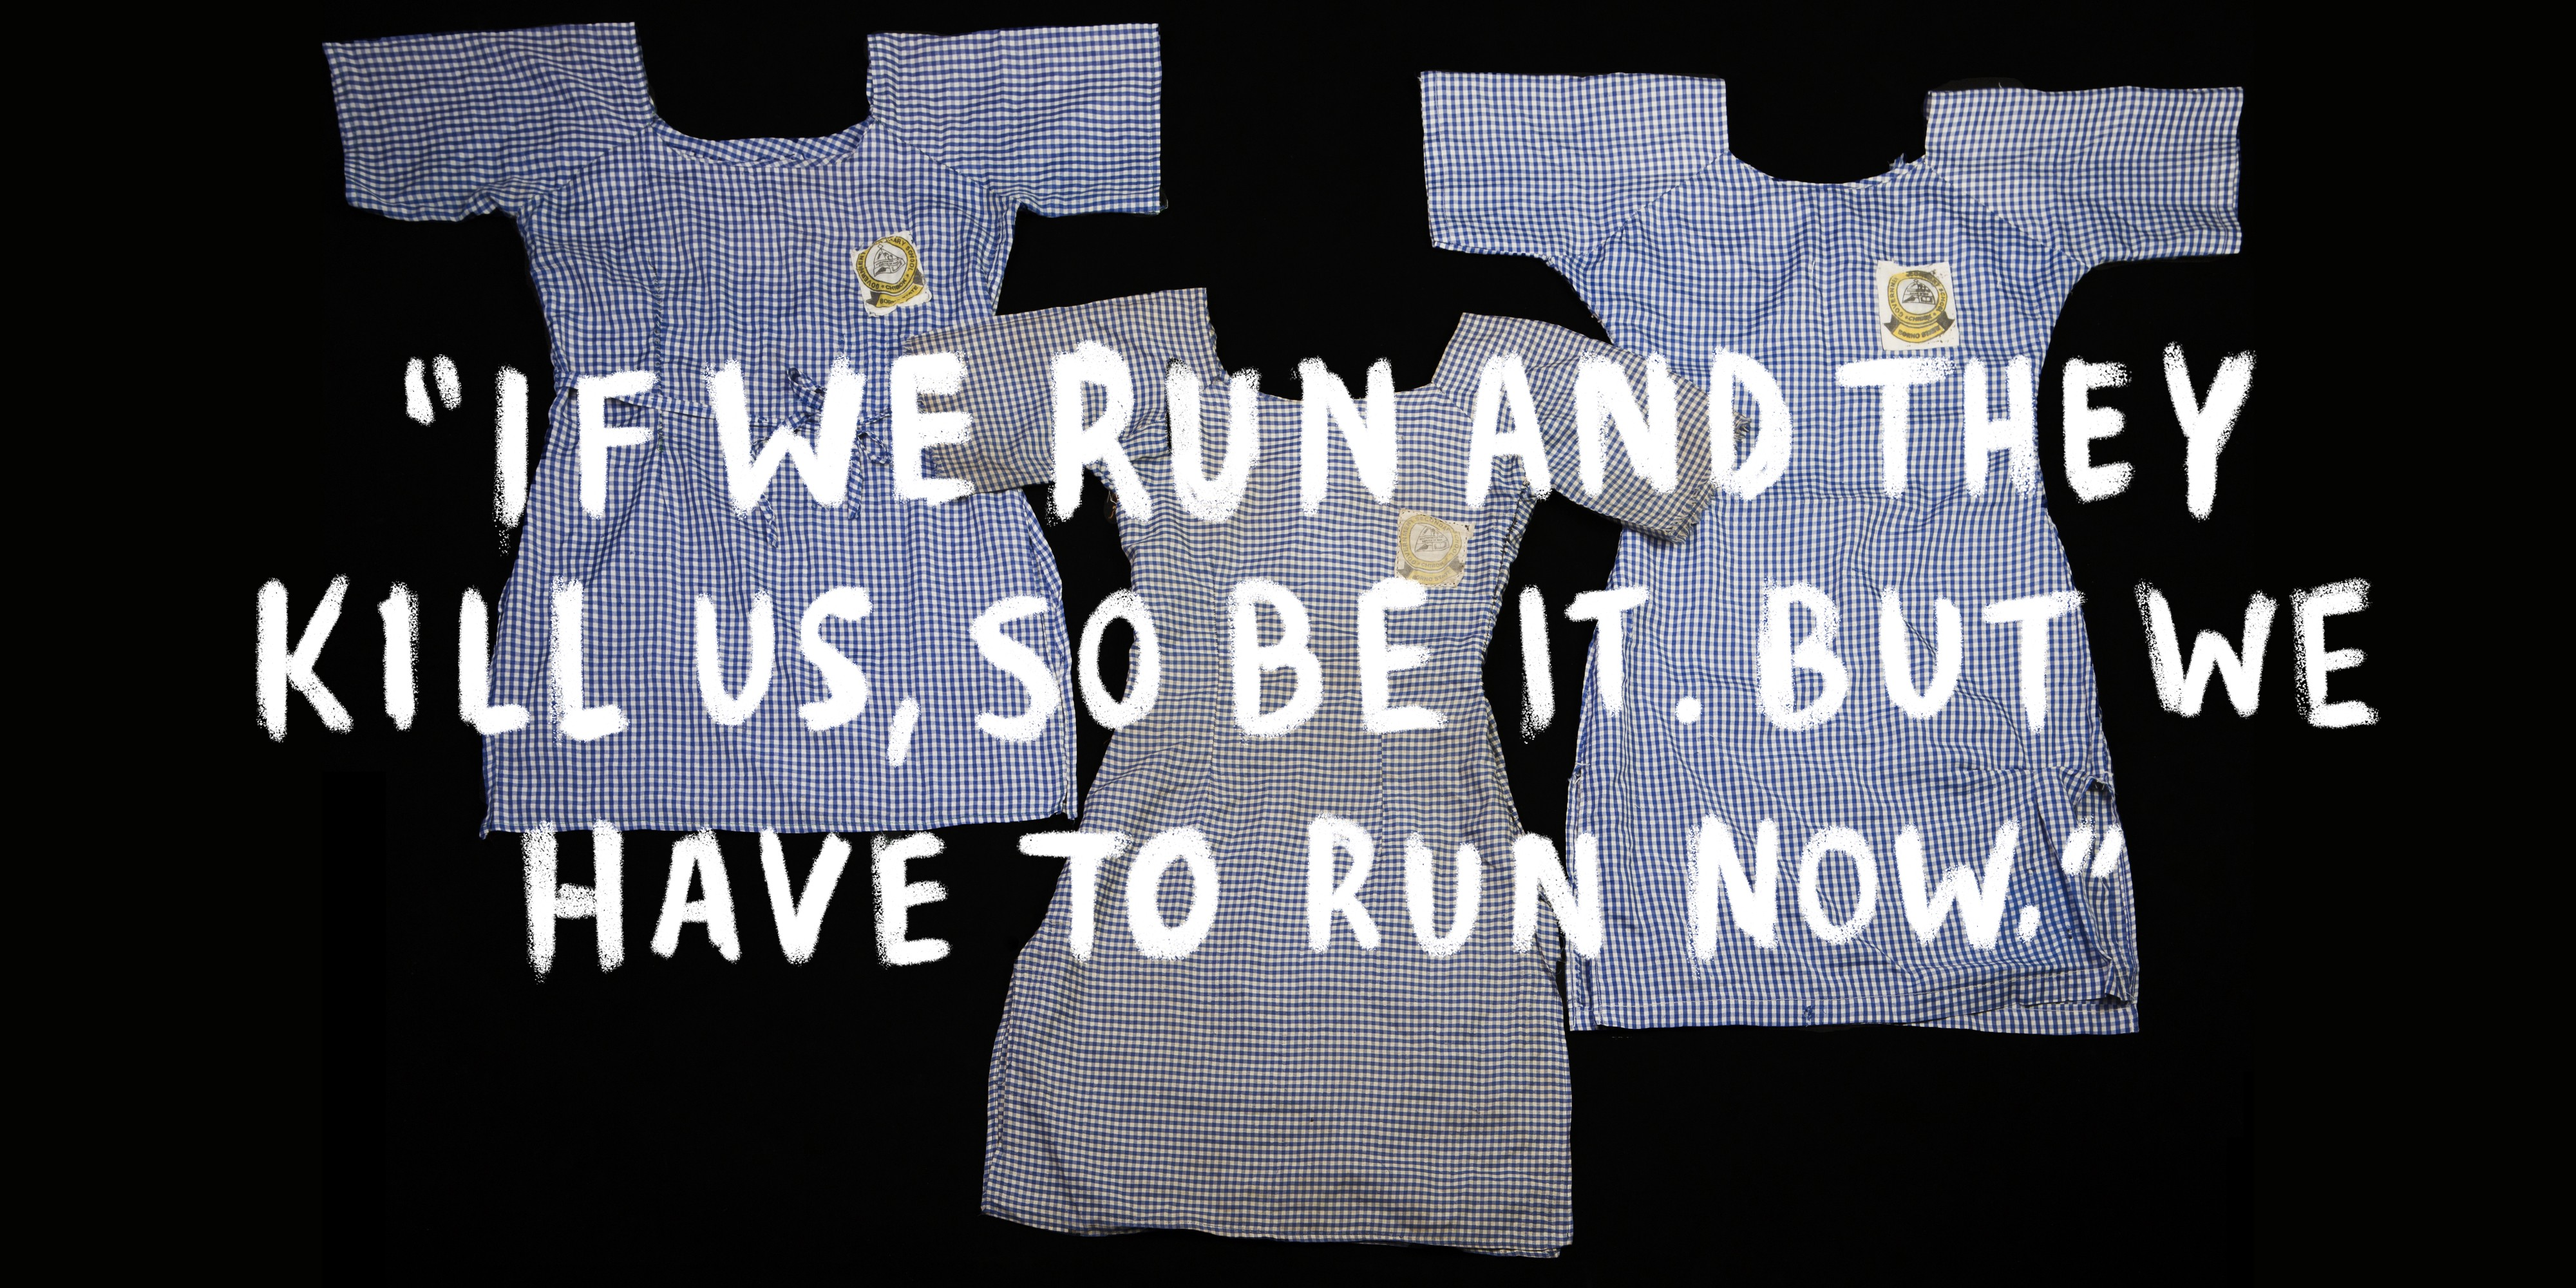 """If we run and they kill us, so be it  But we have to run now """""""